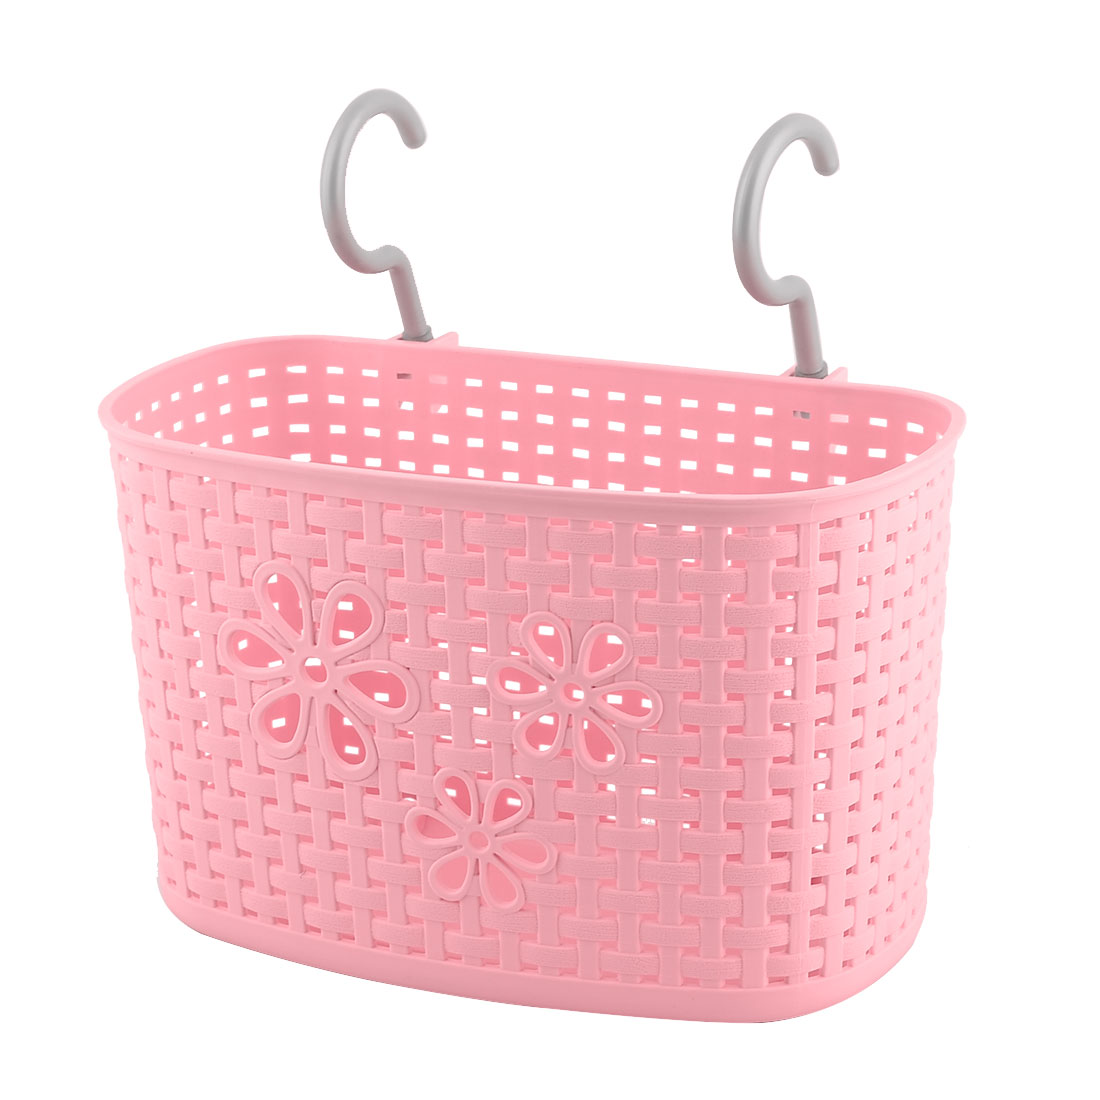 Household Kitchen Plastic Rectangular Hanging Hook Storage Basket Container Pink